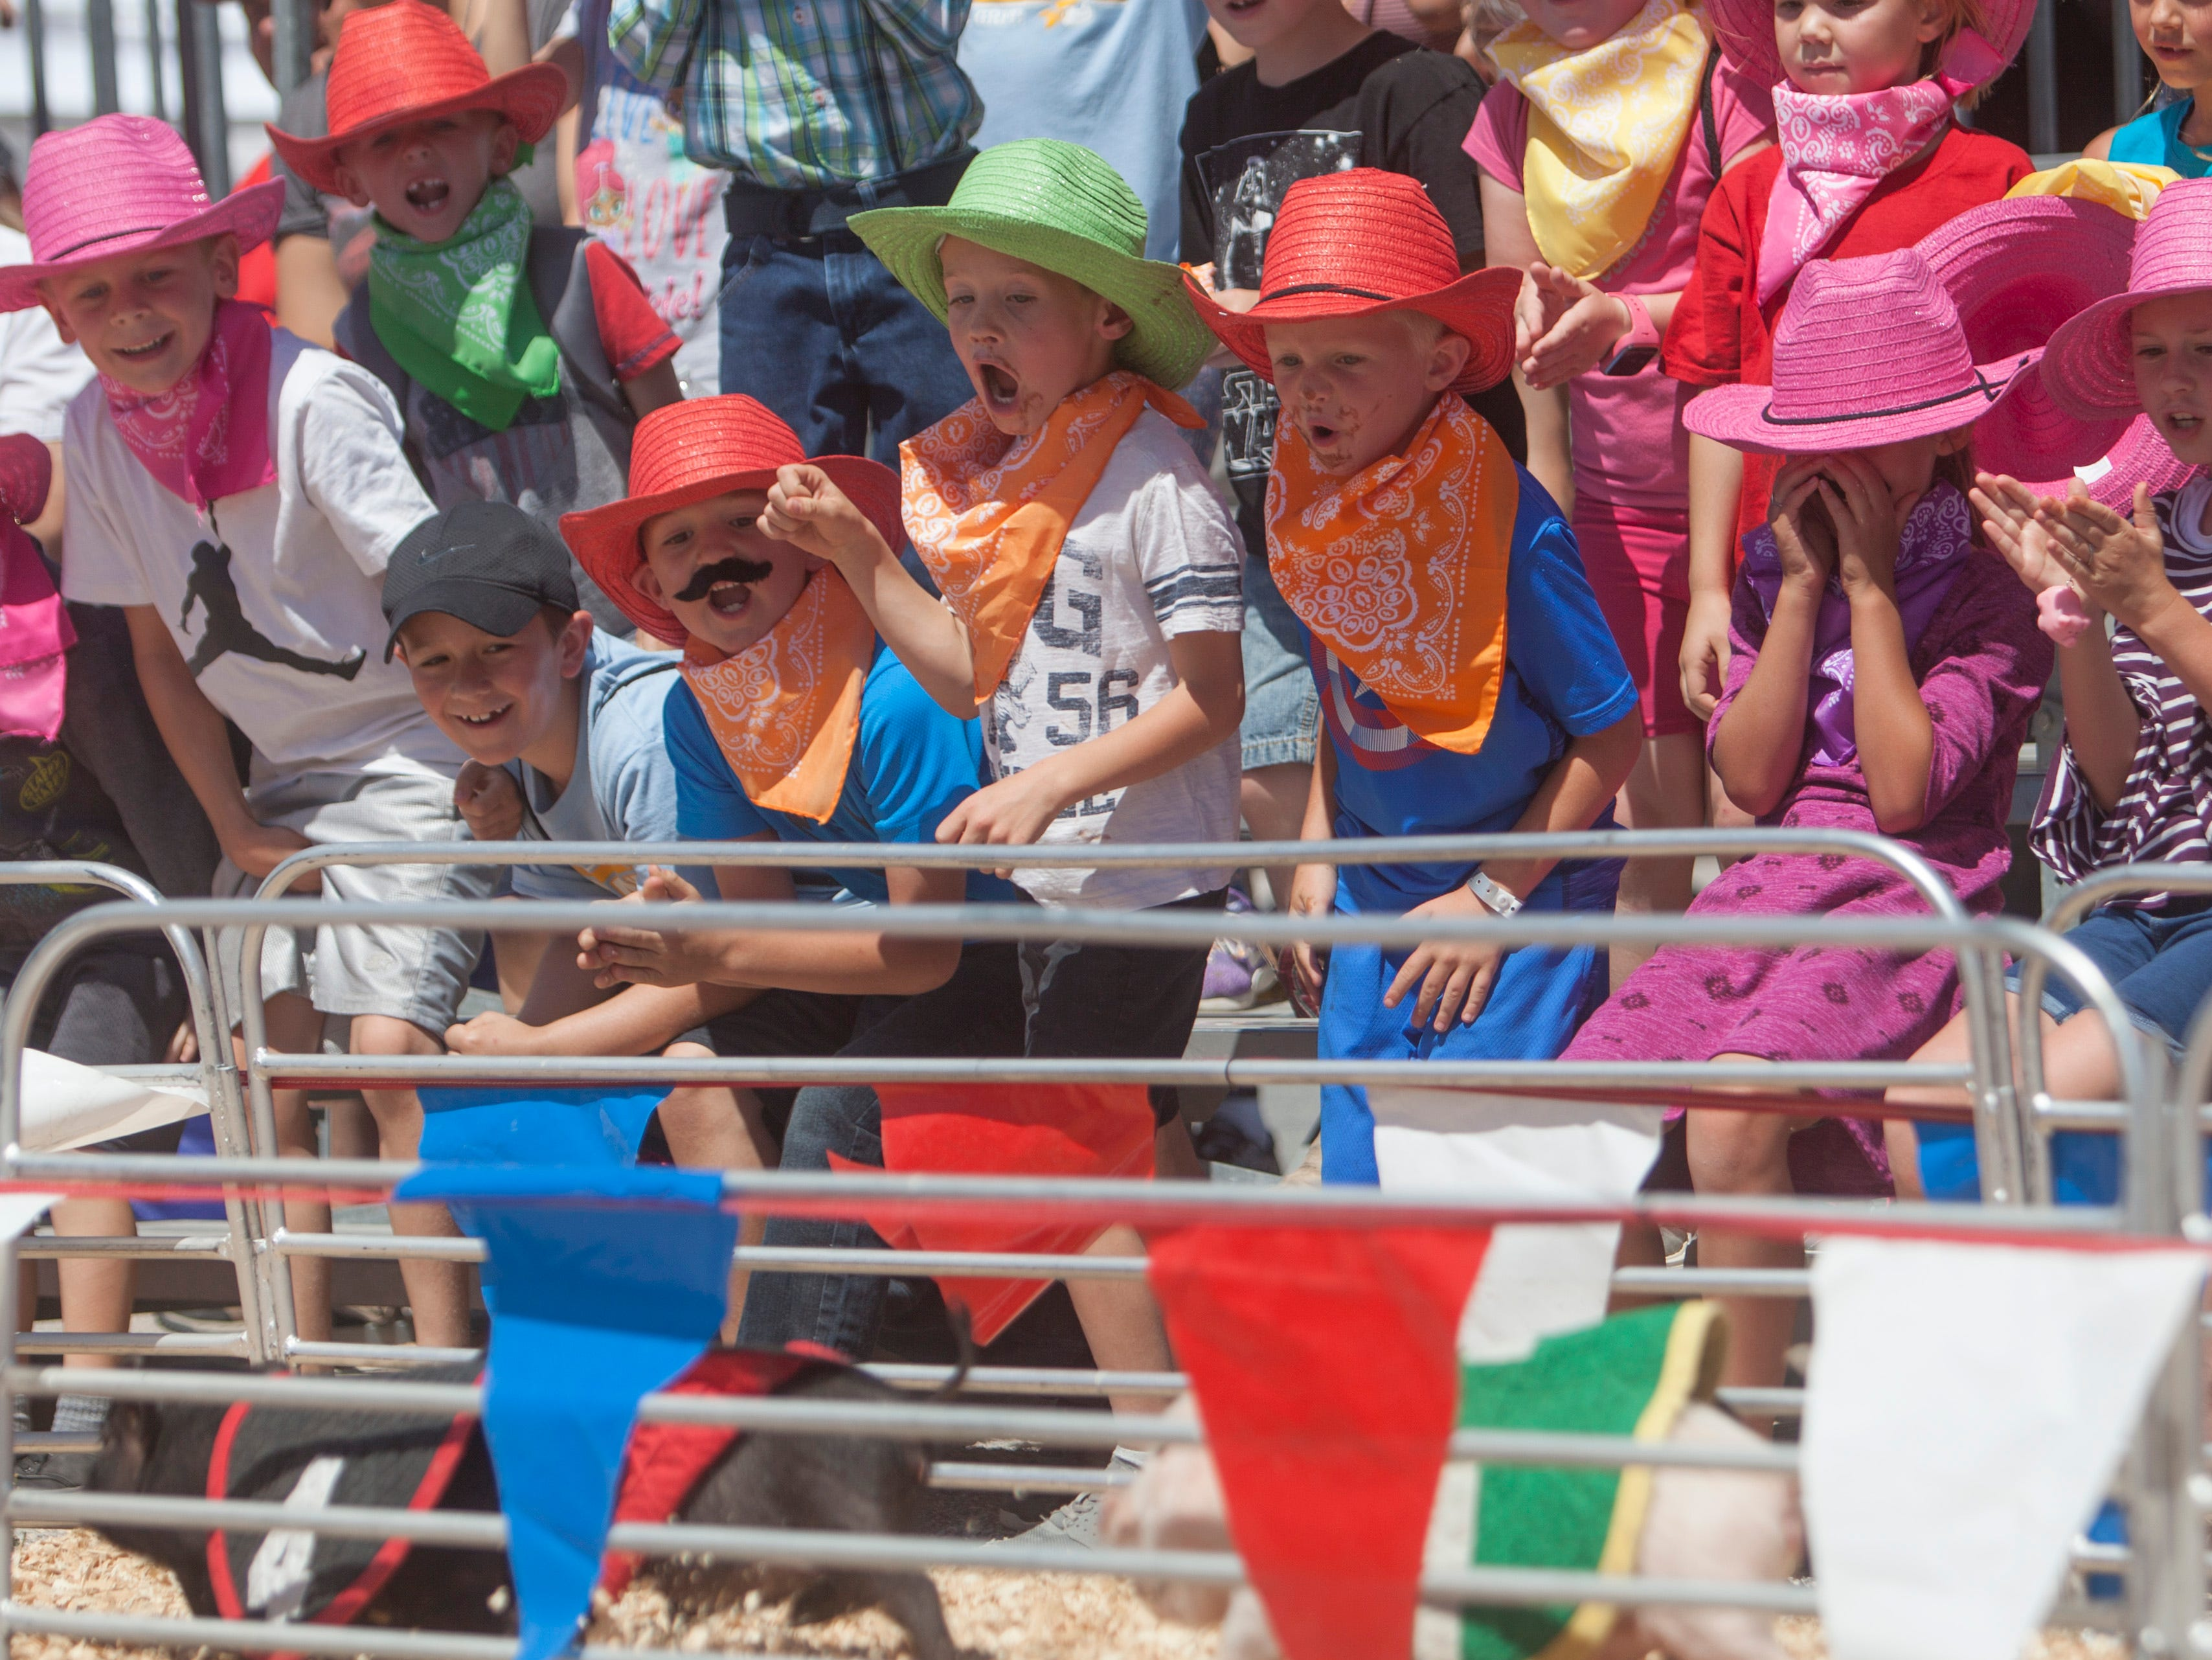 Fairgoers enjoy the attractions at the Clark County Fair and Rodeo Wednesday, April 11, 2018.